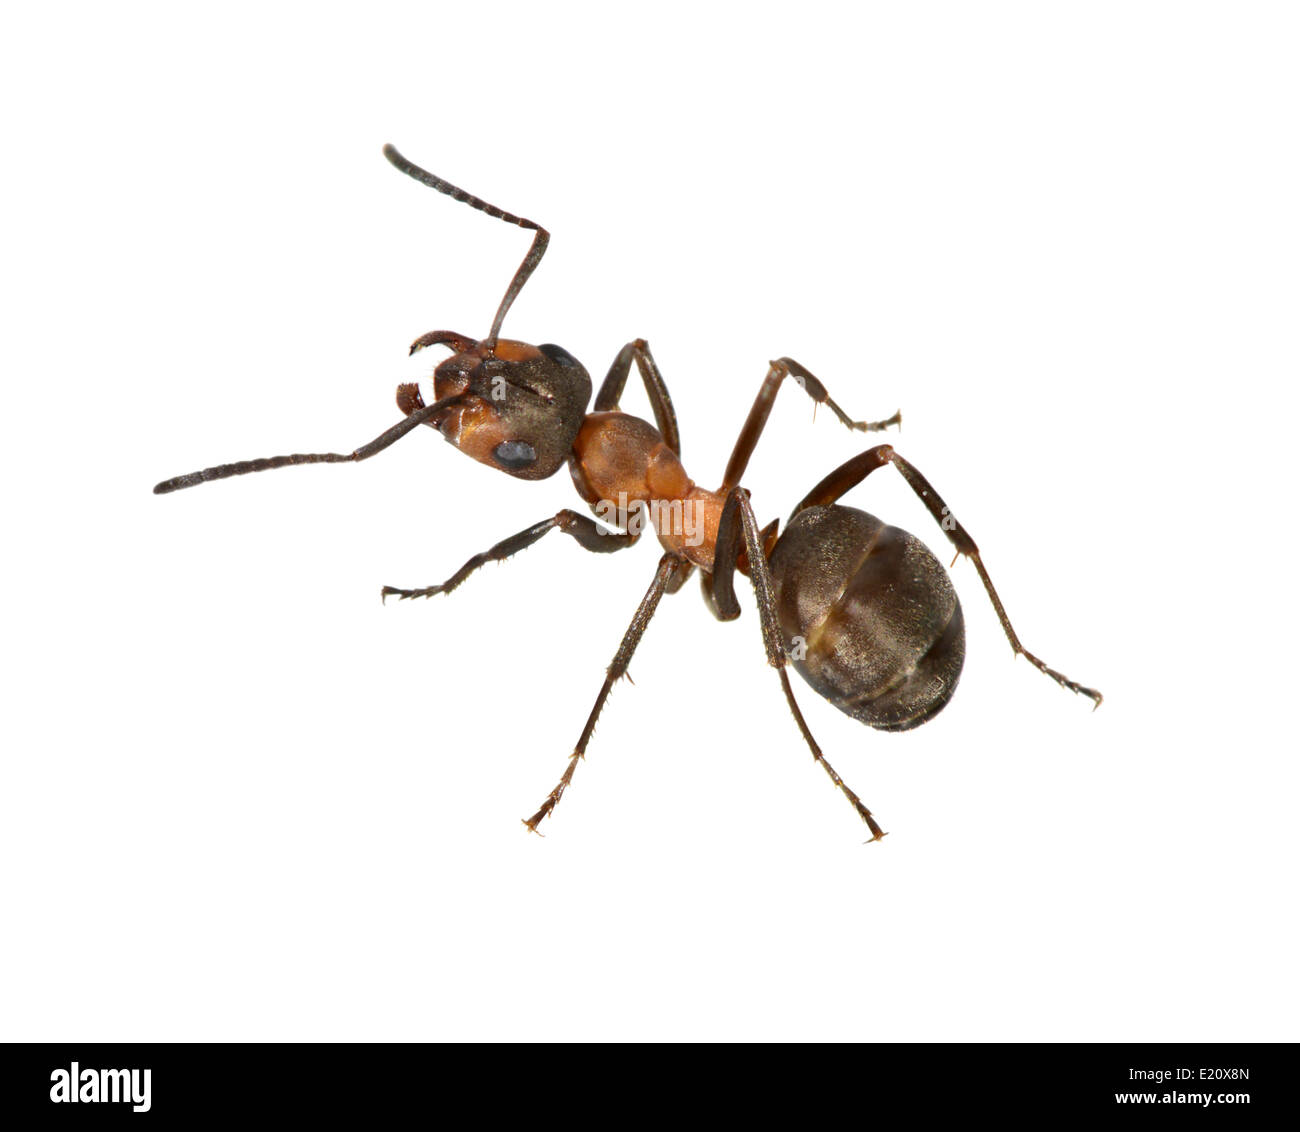 Wood Ant - Formica rufa Stock Photo